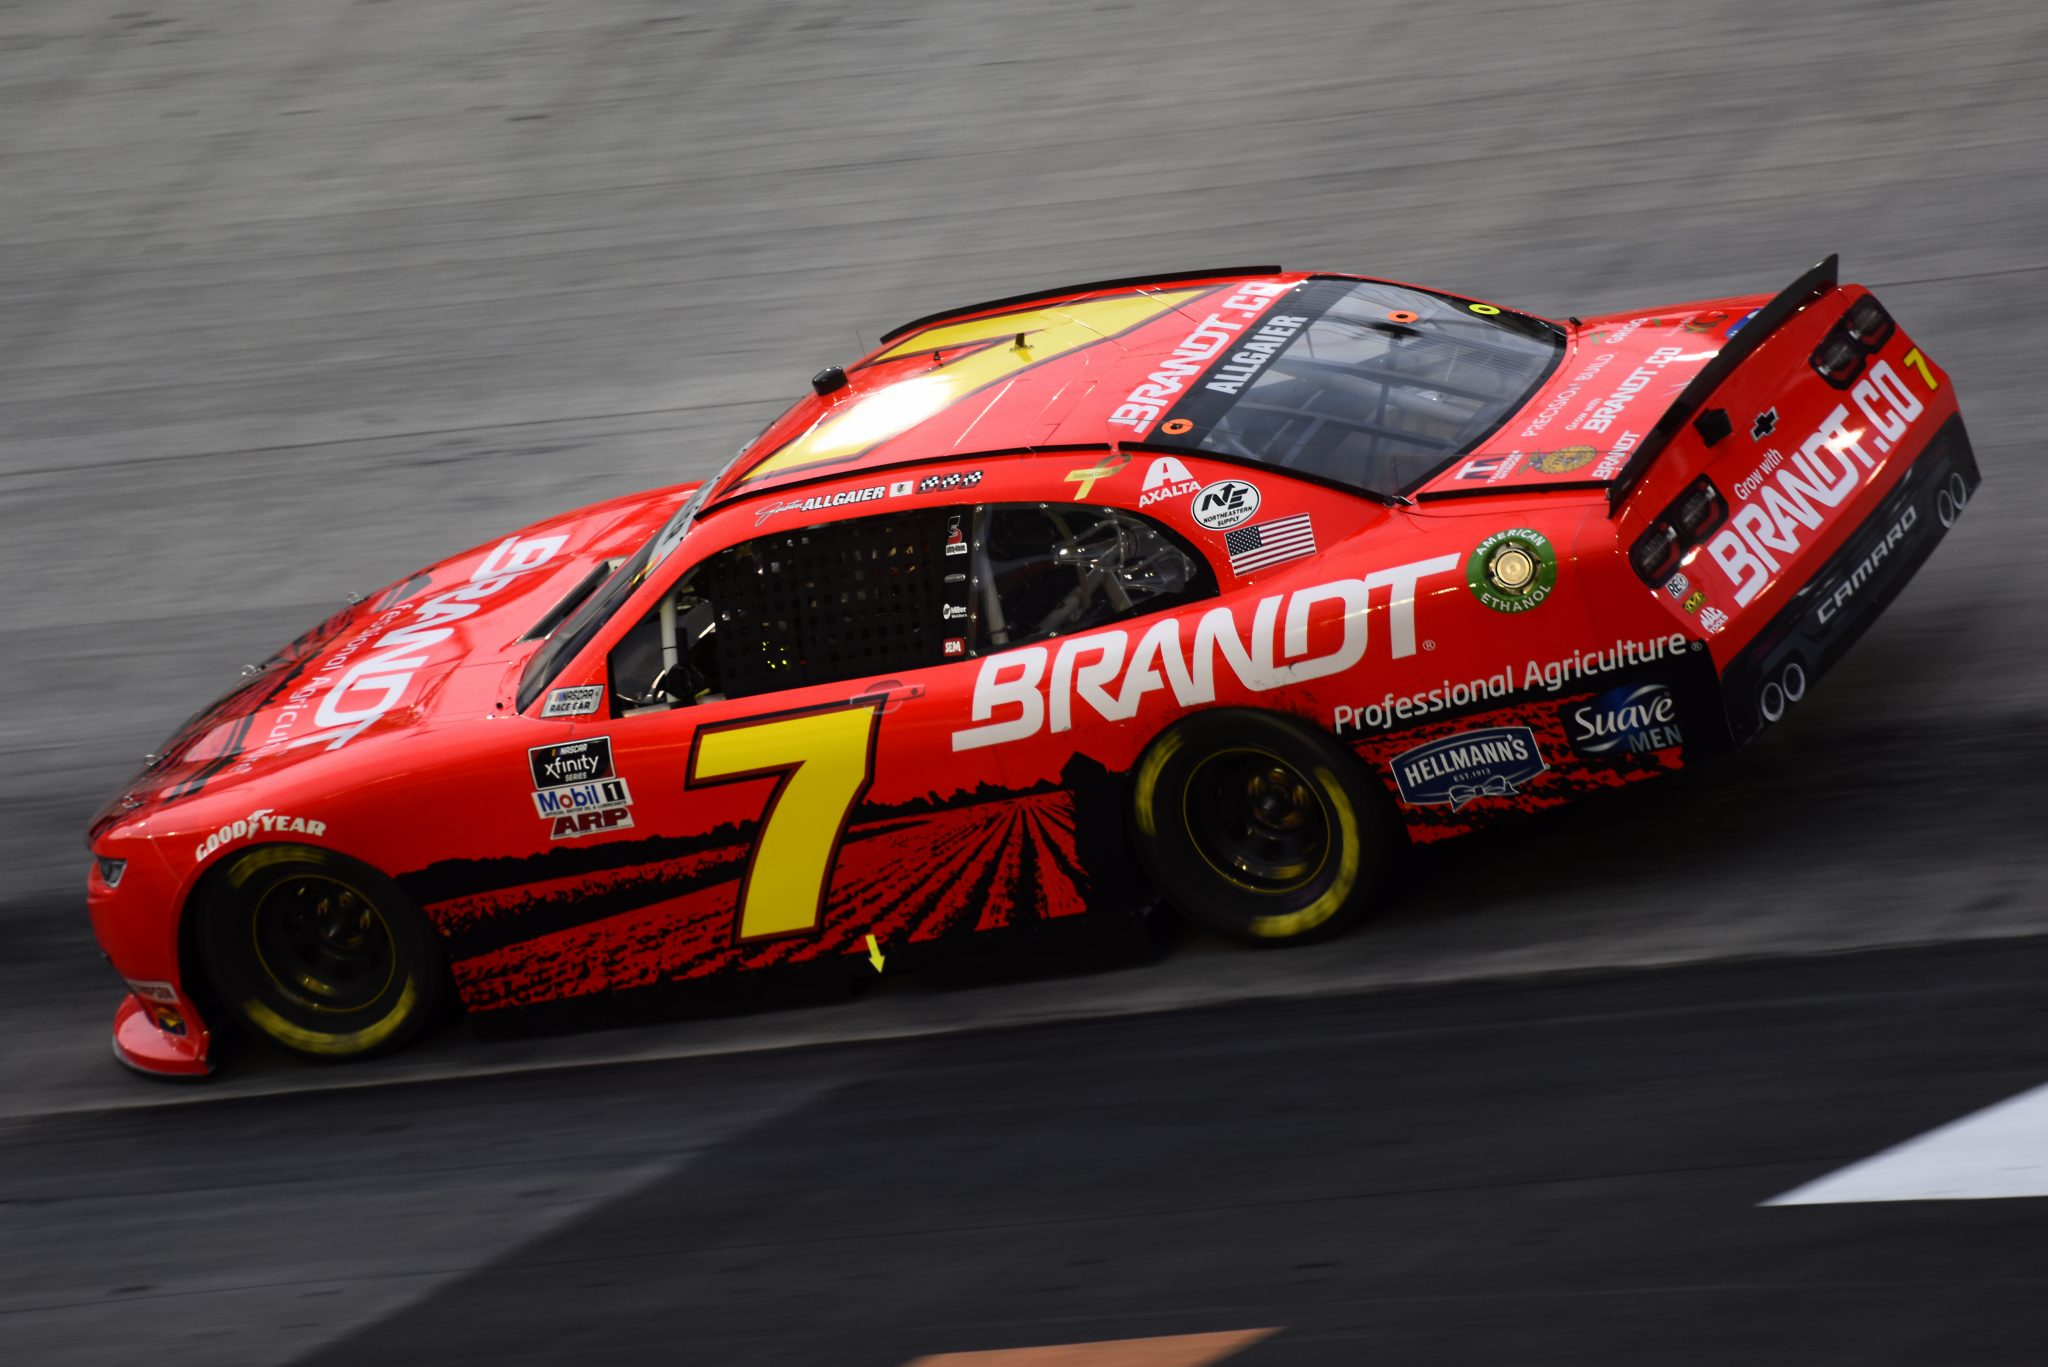 BRISTOL, TENNESSEE - SEPTEMBER 18: Justin Allgaier, driver of the #7 BRANDT Chevrolet, drives during the NASCAR Xfinity Series Food City 300 at Bristol Motor Speedway on September 18, 2020 in Bristol, Tennessee. (Photo by Jared C. Tilton/Getty Images) | Getty Images